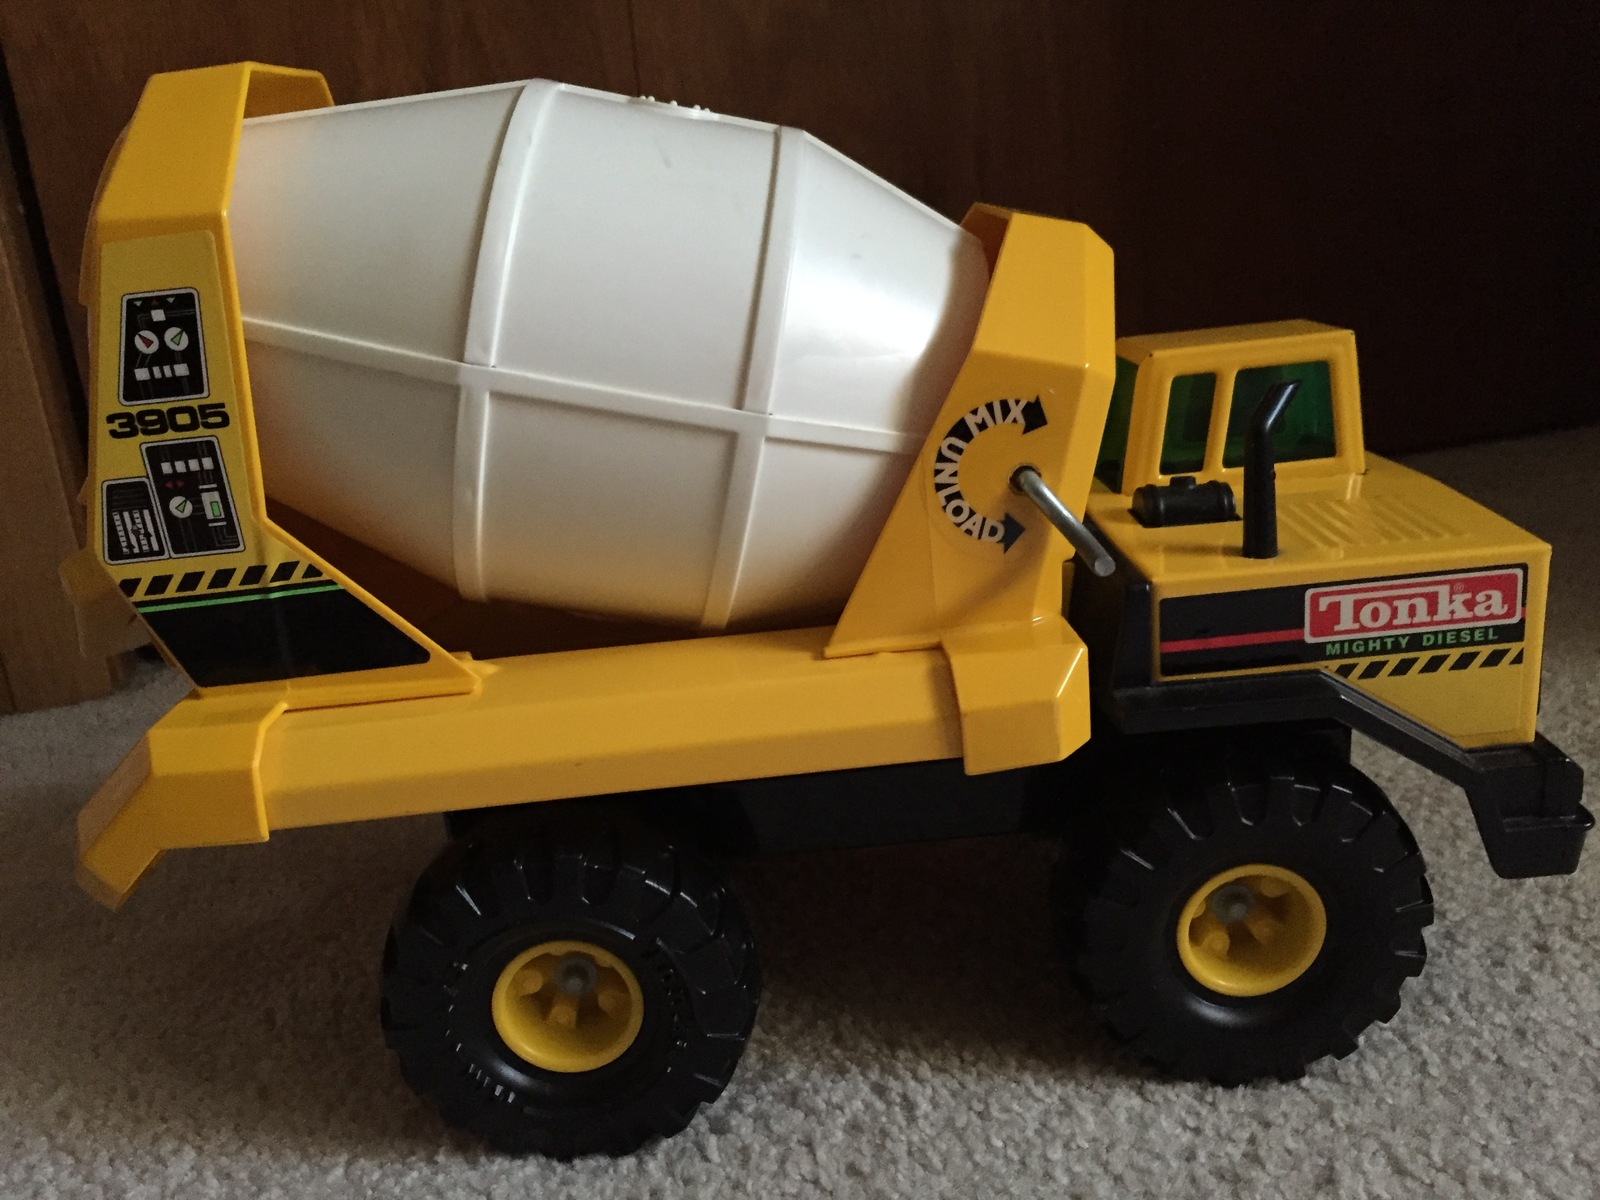 *VINTAGE* TONKA MIGHTY DIESEL CEMENT MIXER -UNIQUE GREEN WINDOW *USA* XMB 975